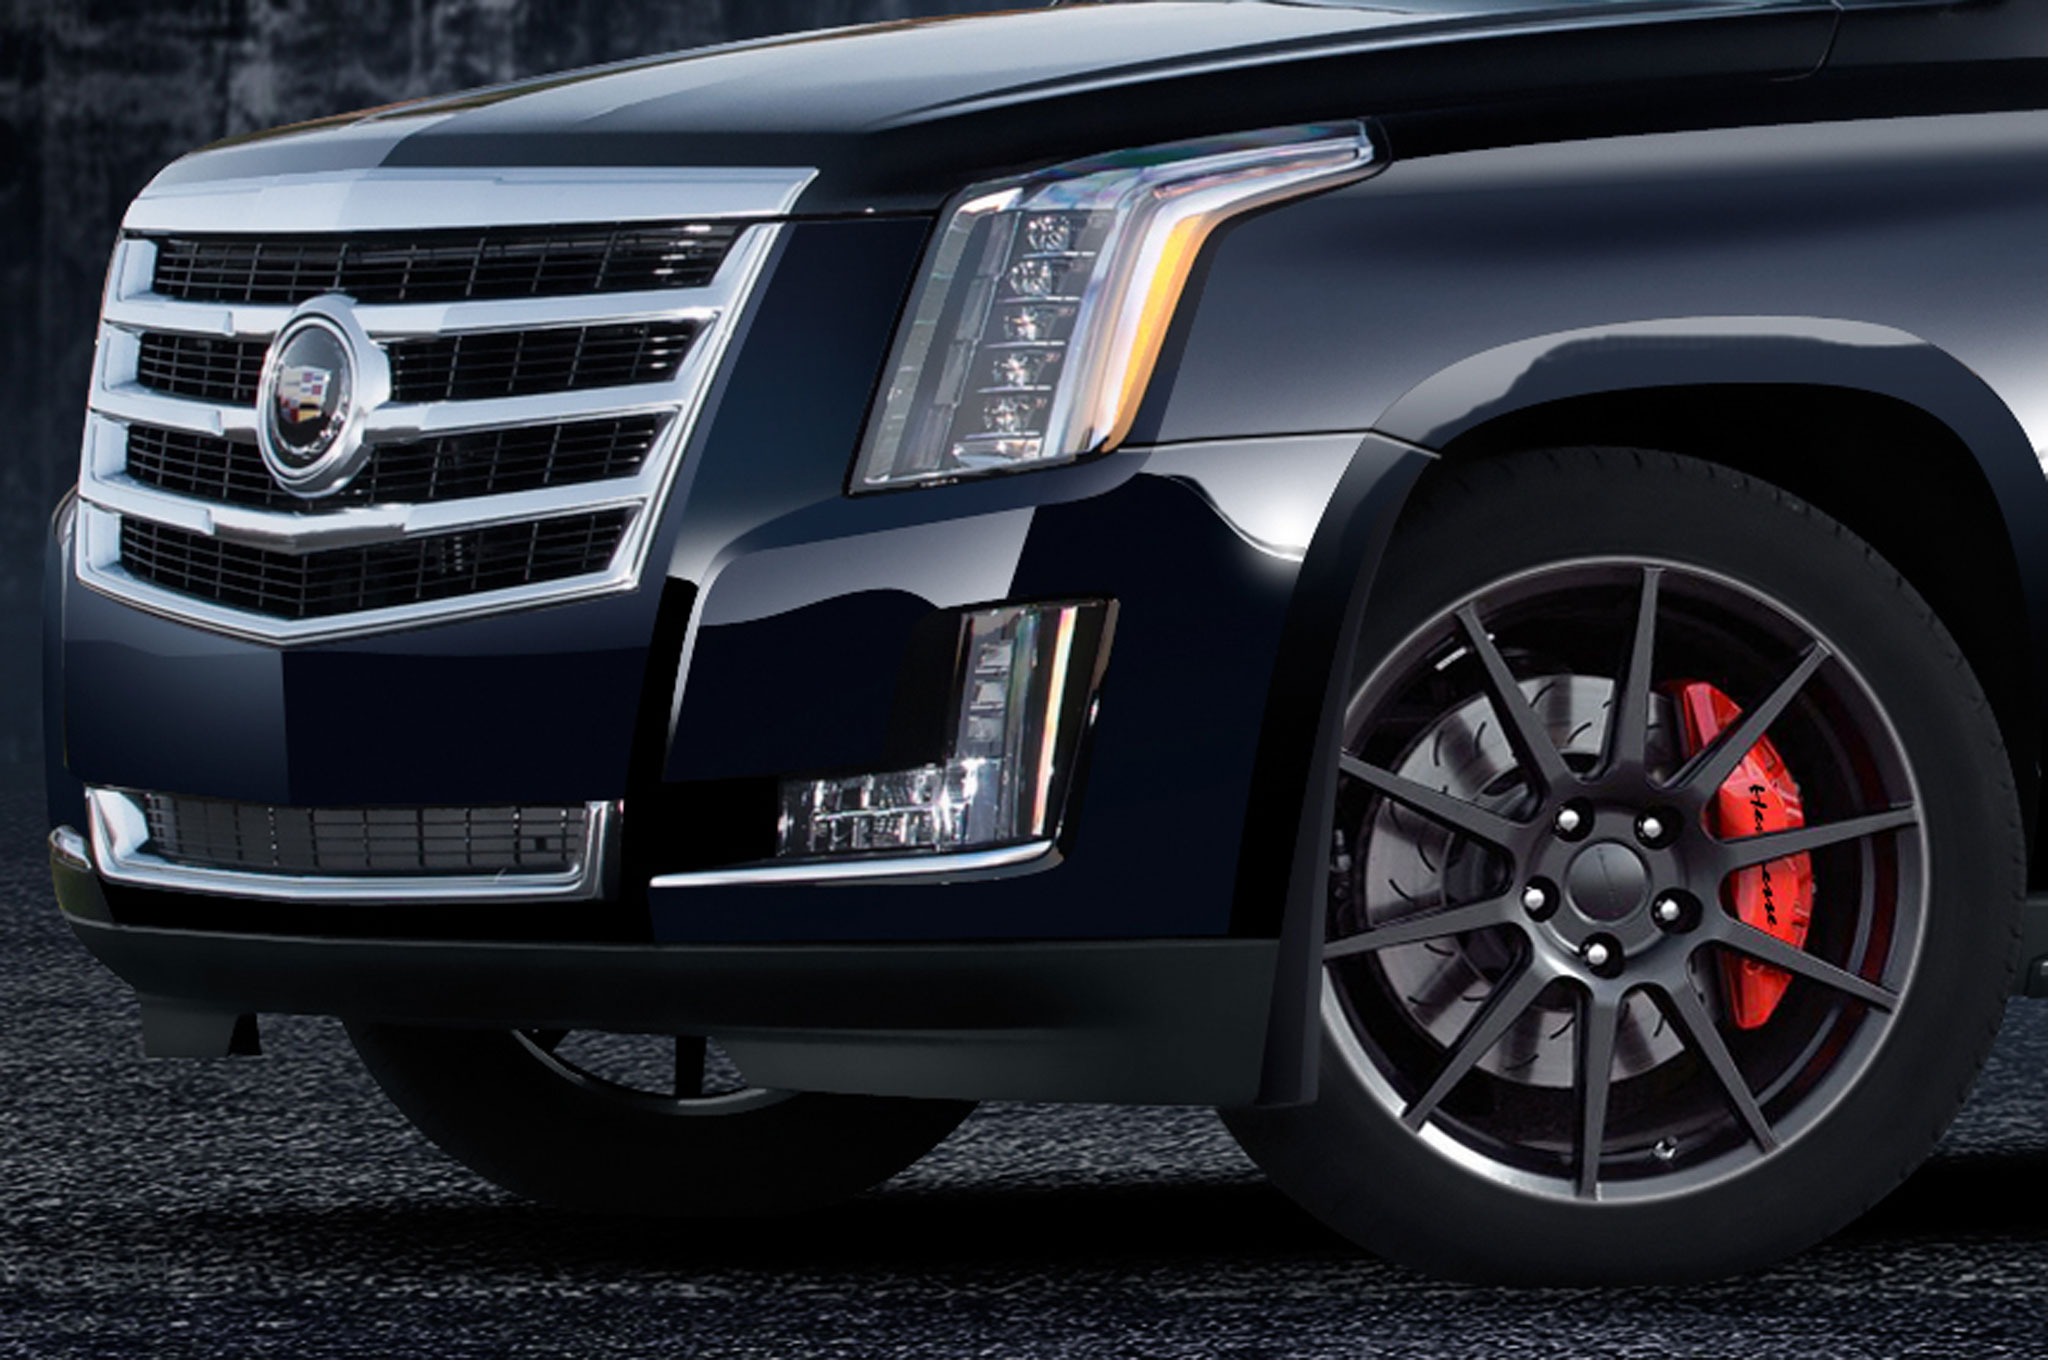 Hennessey Supercharges 2015 Cadillac Escalade to Create HPE550